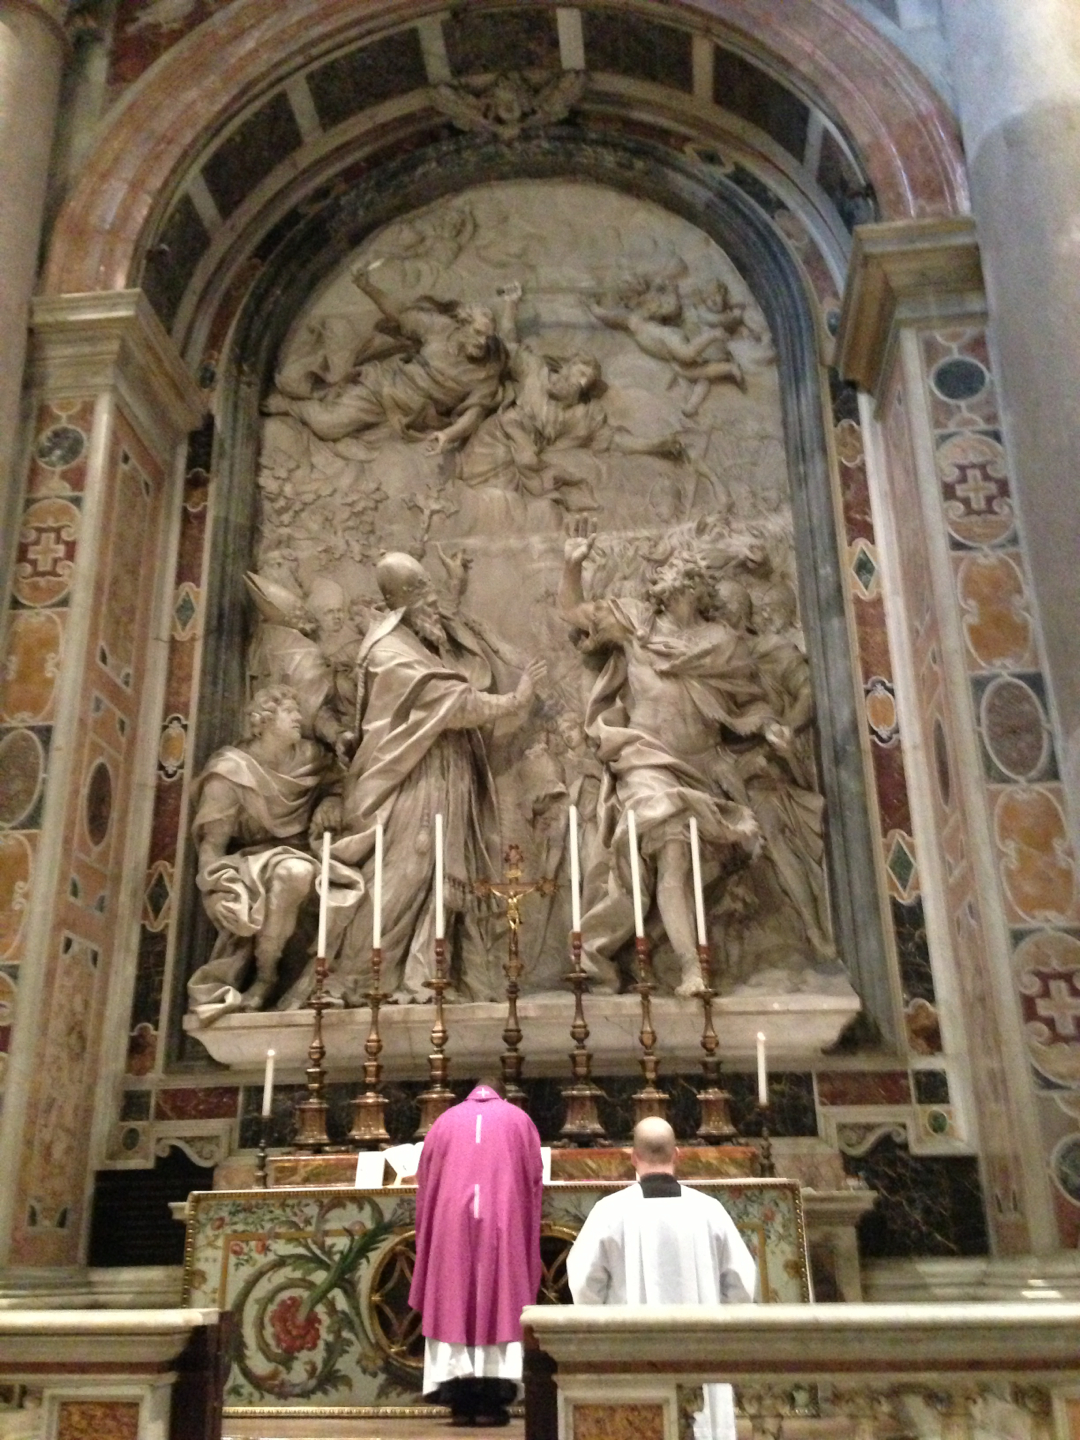 Priest_celebrating_Mass_at_Altar_of_Leo_I_in_St._Peter's_Basilica